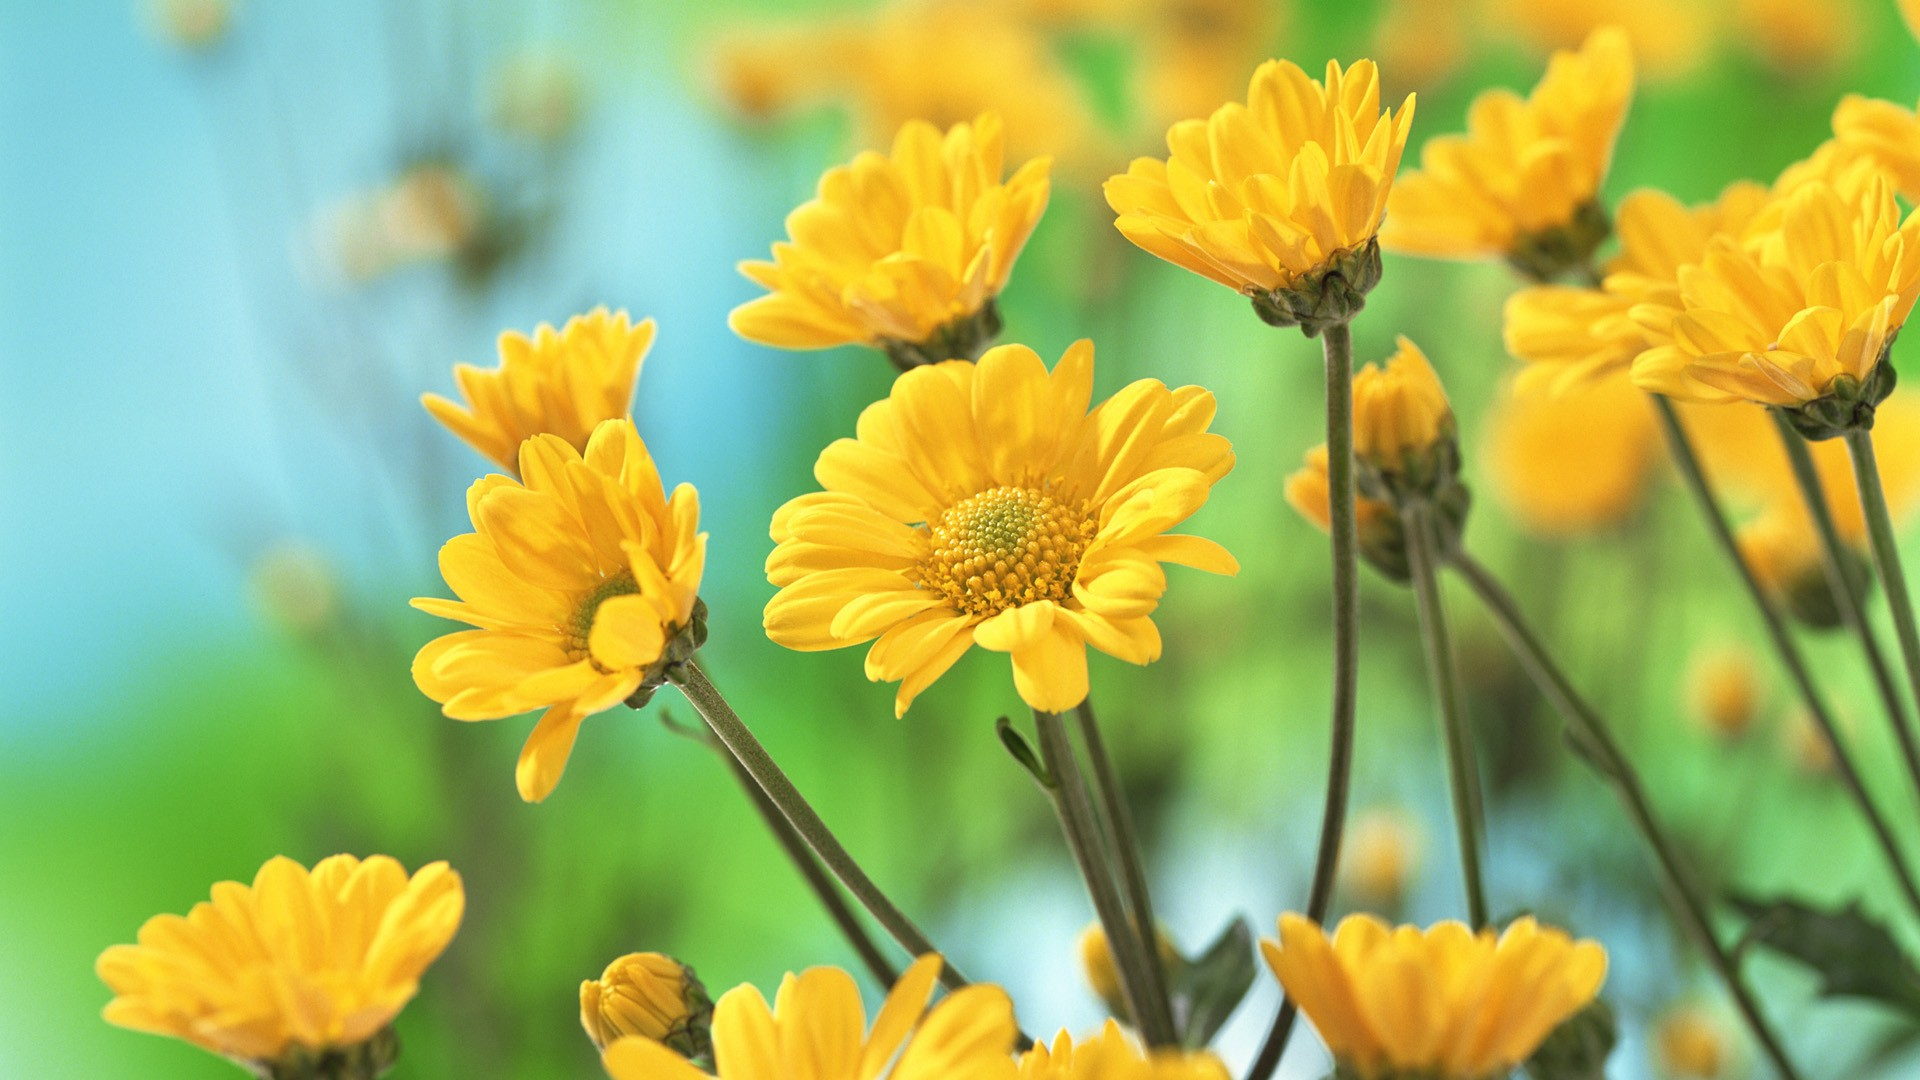 yellow flowers wallpaper - wallpapersafari